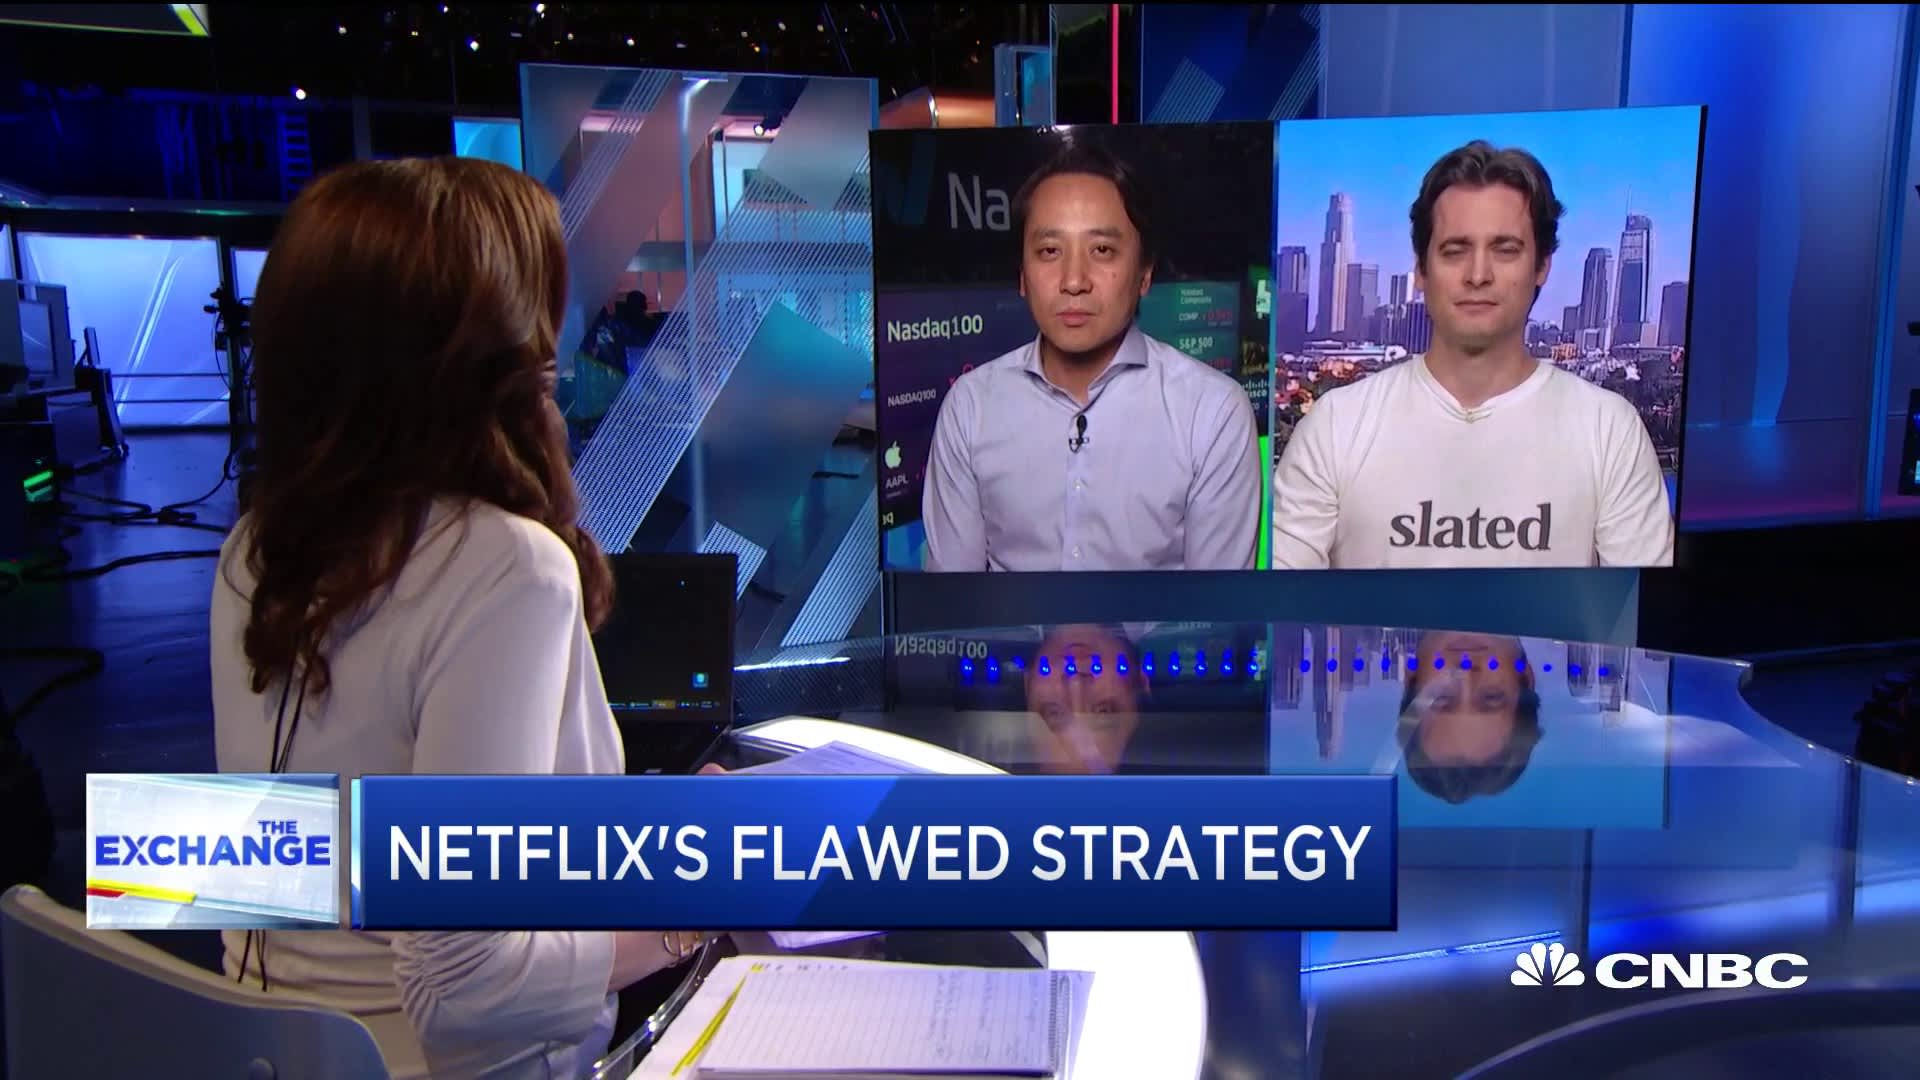 Netflix's strategy coming back to bite them, says expert